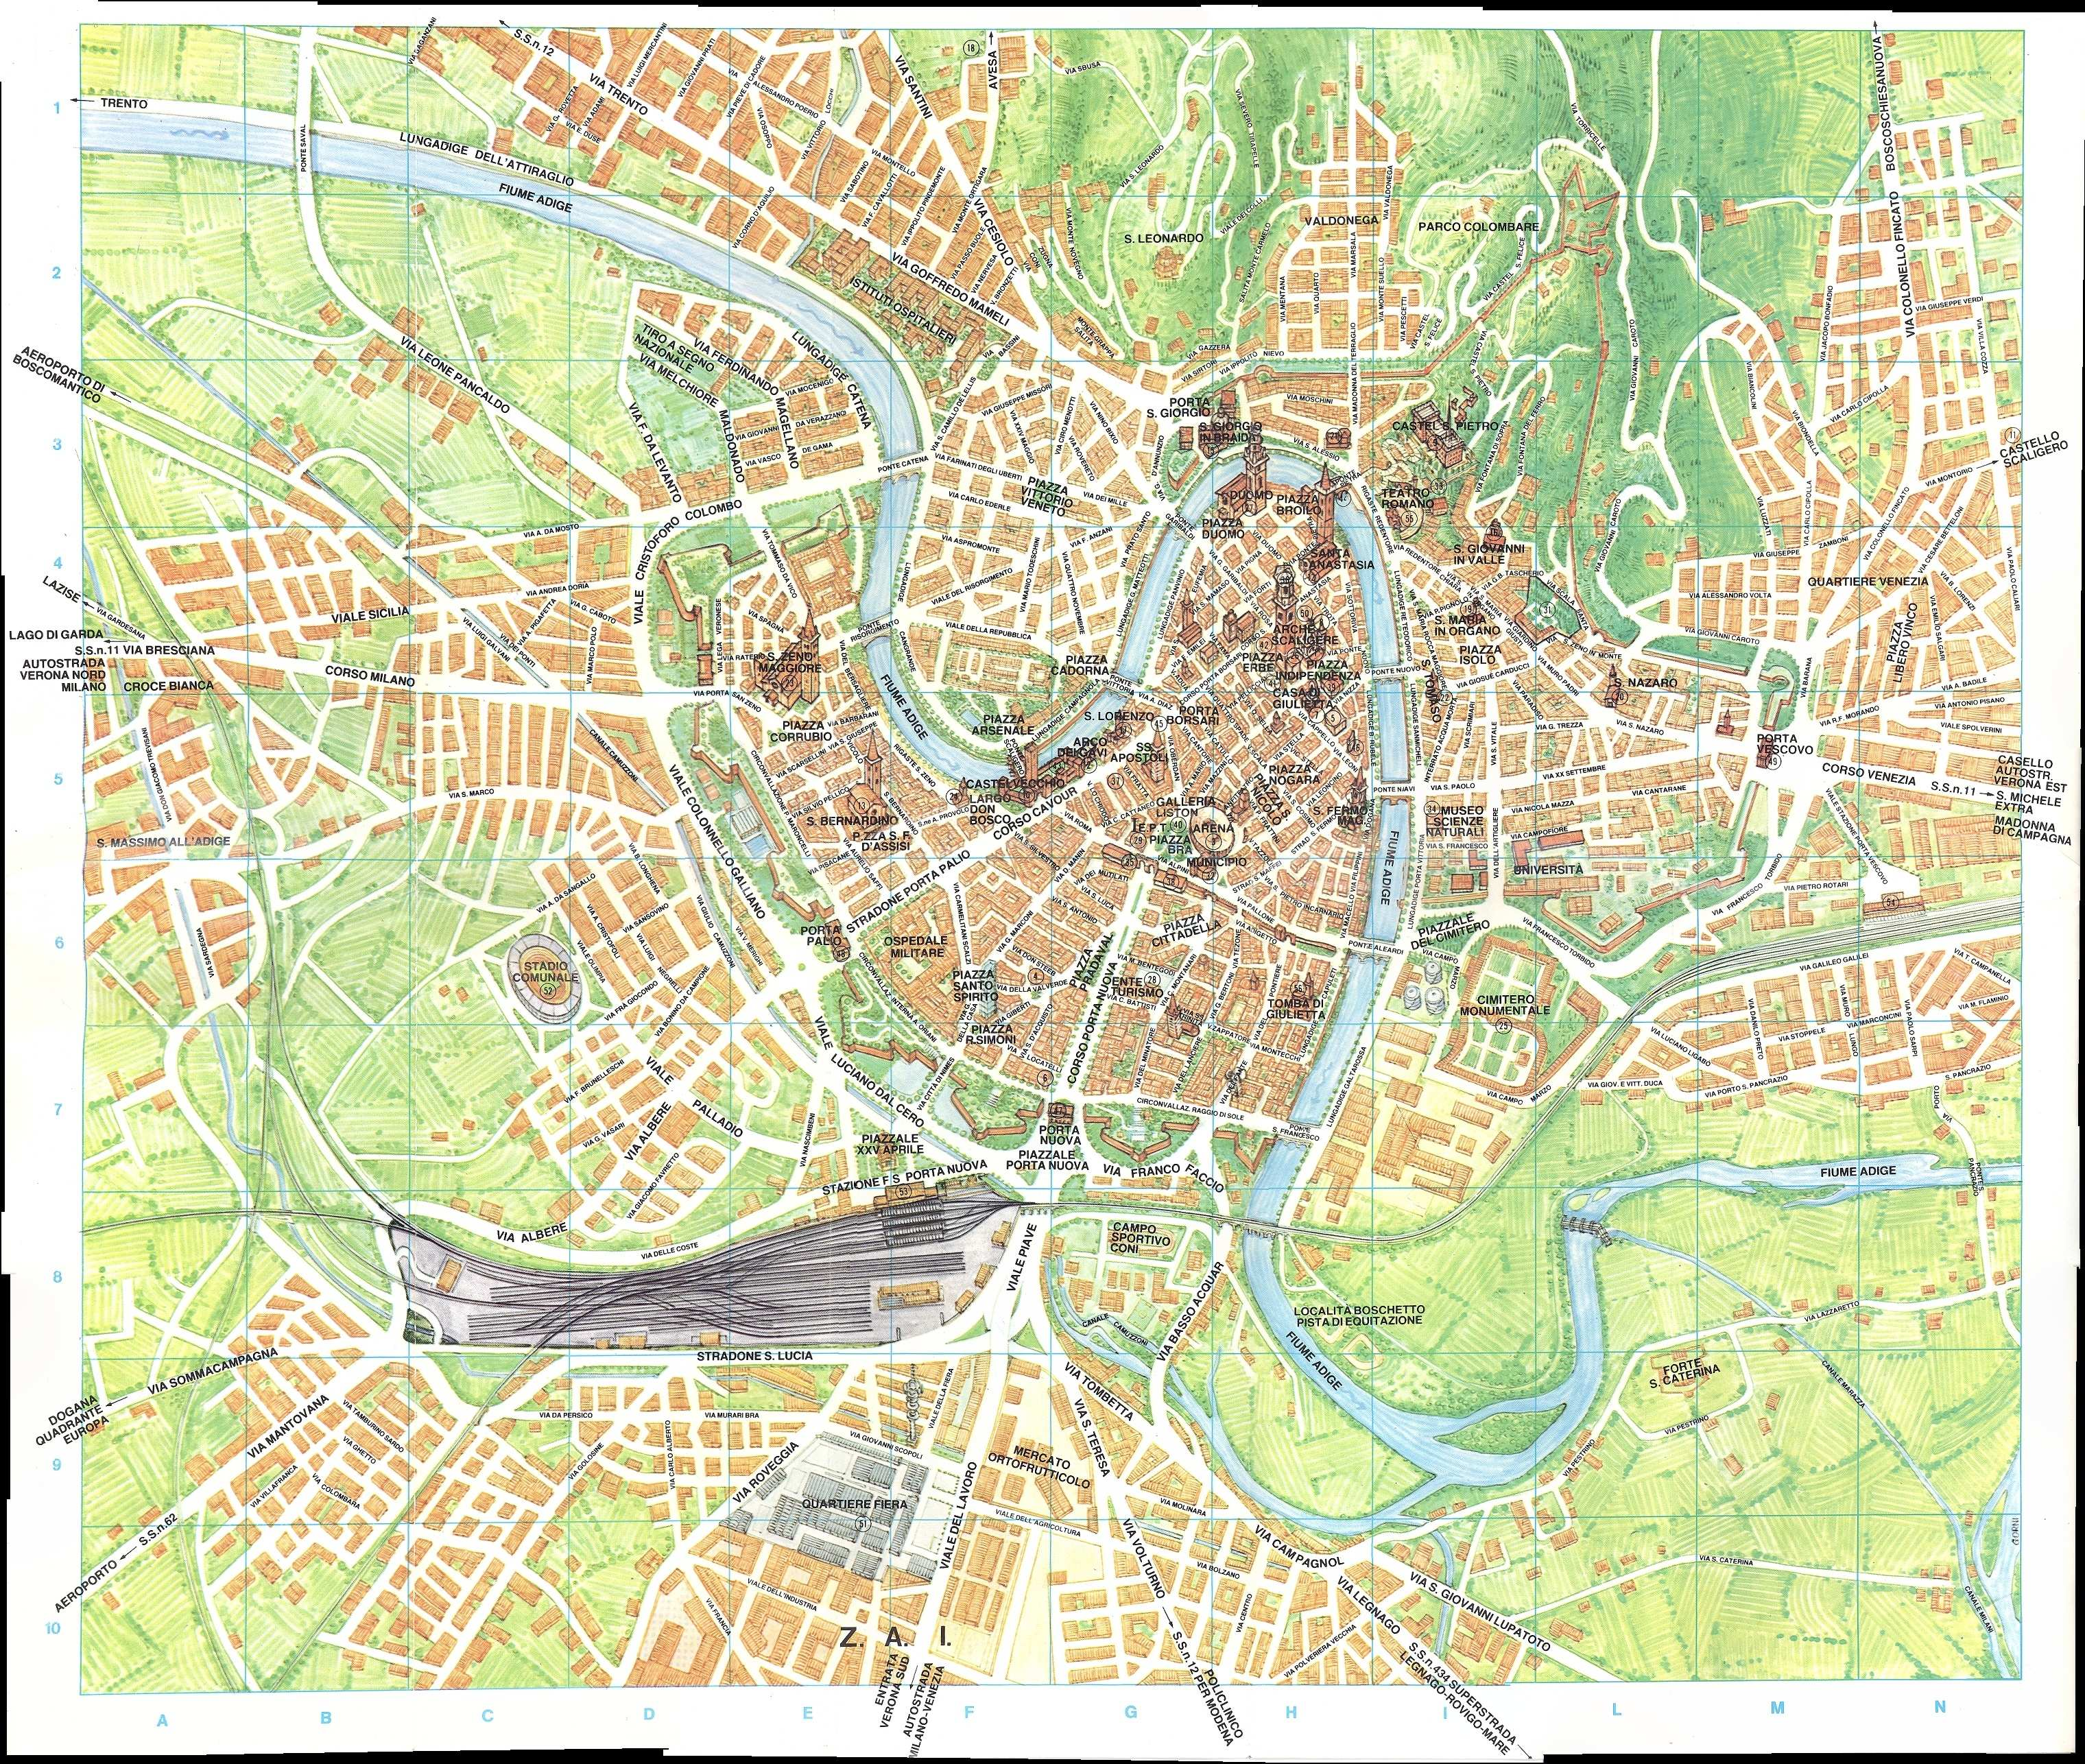 verona tourism map - photo#14